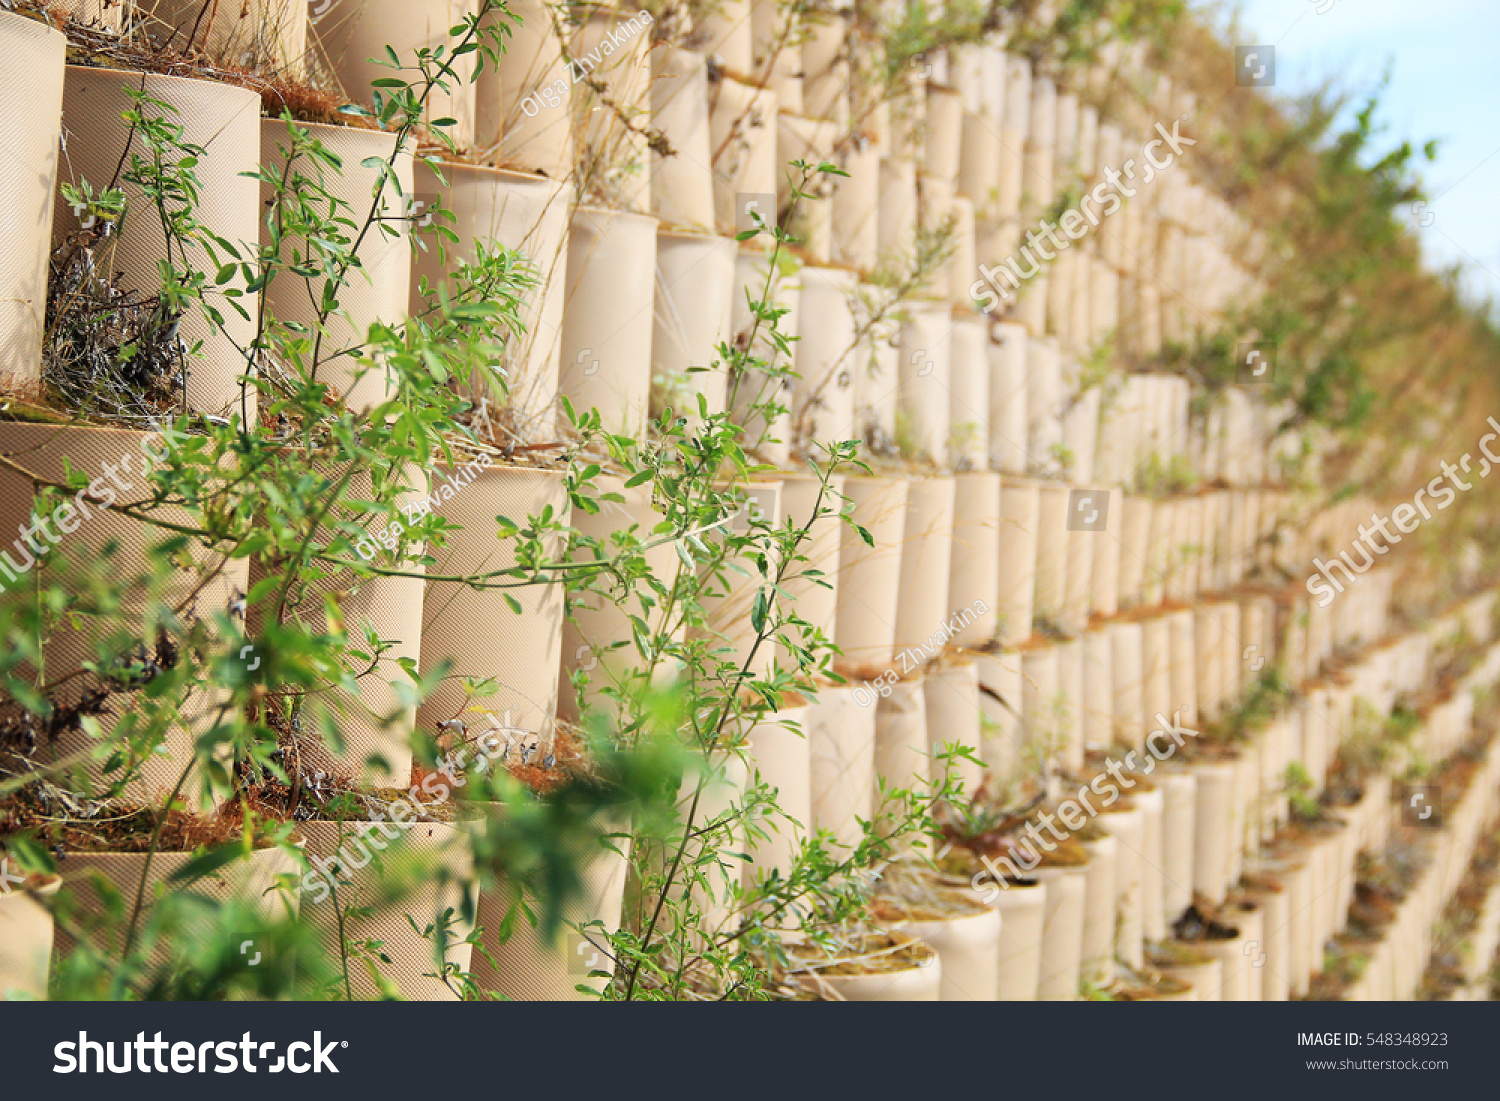 Retaining Wall Drainage Building Plants Stock Photo (Download Now ...